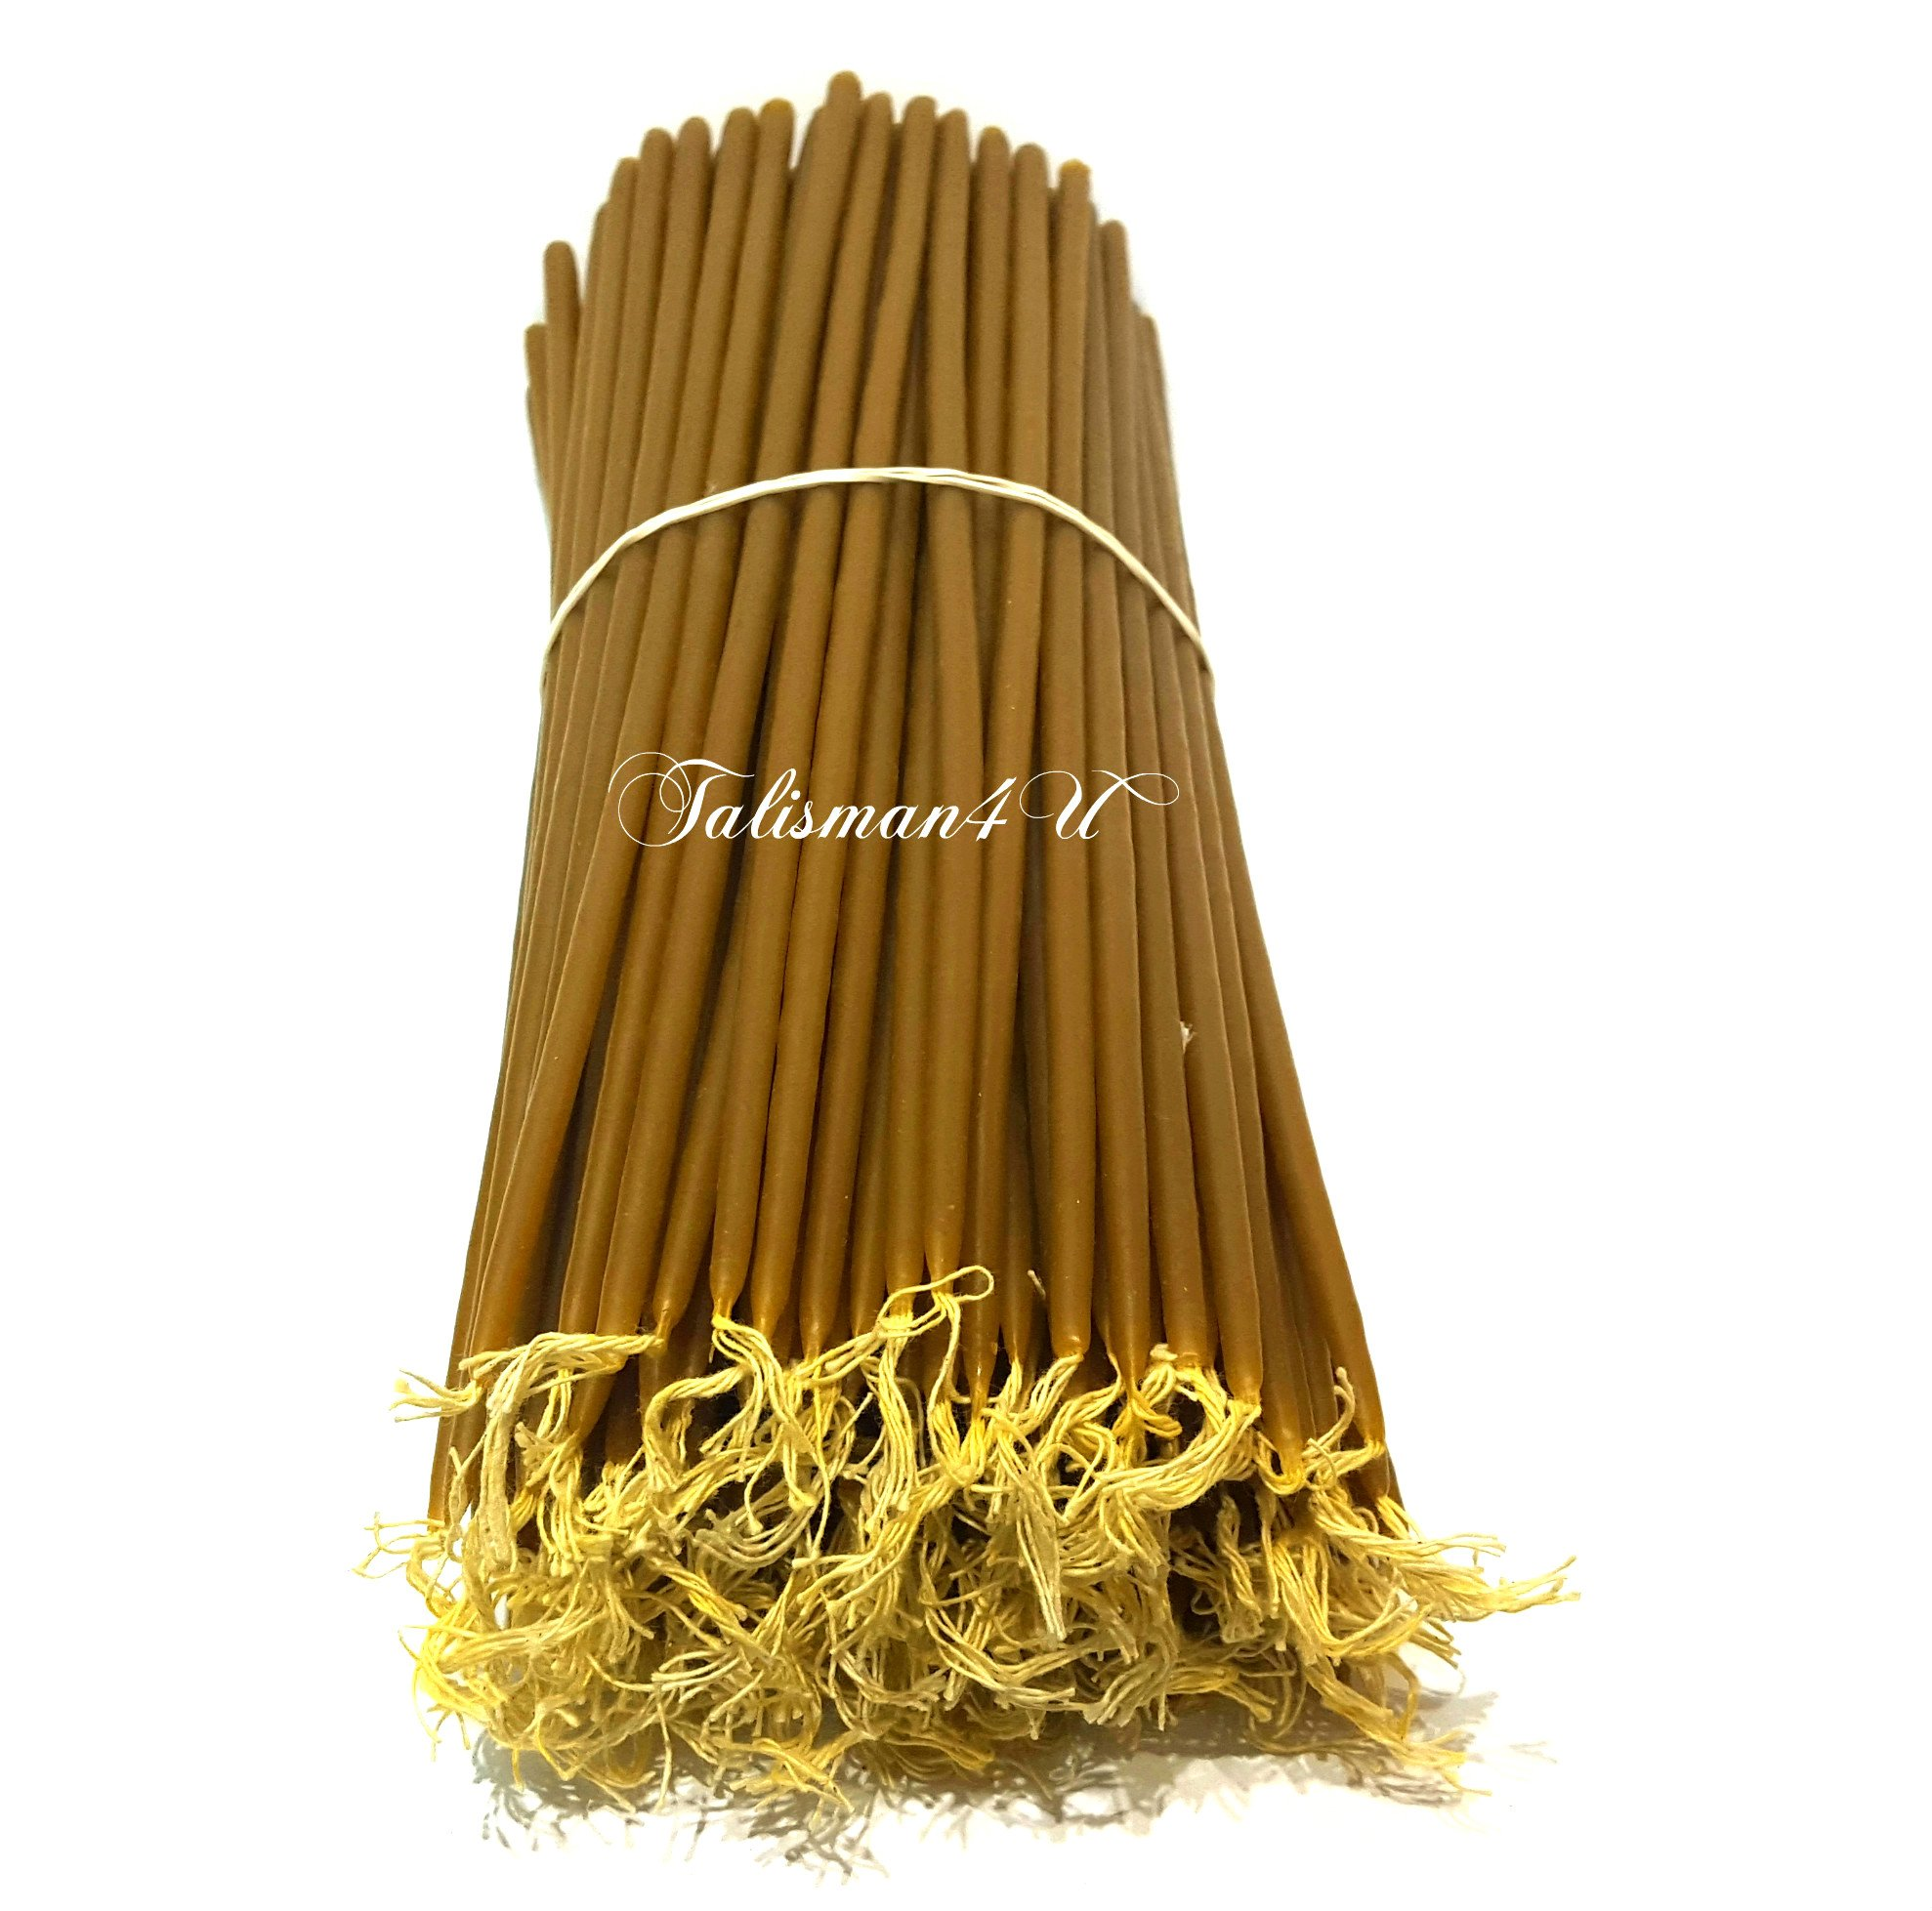 50 Natural Pure BEESWAX TAPER CANDLES 11'' Tall Church Jerusalem Holy Land Candles by Talisman4U